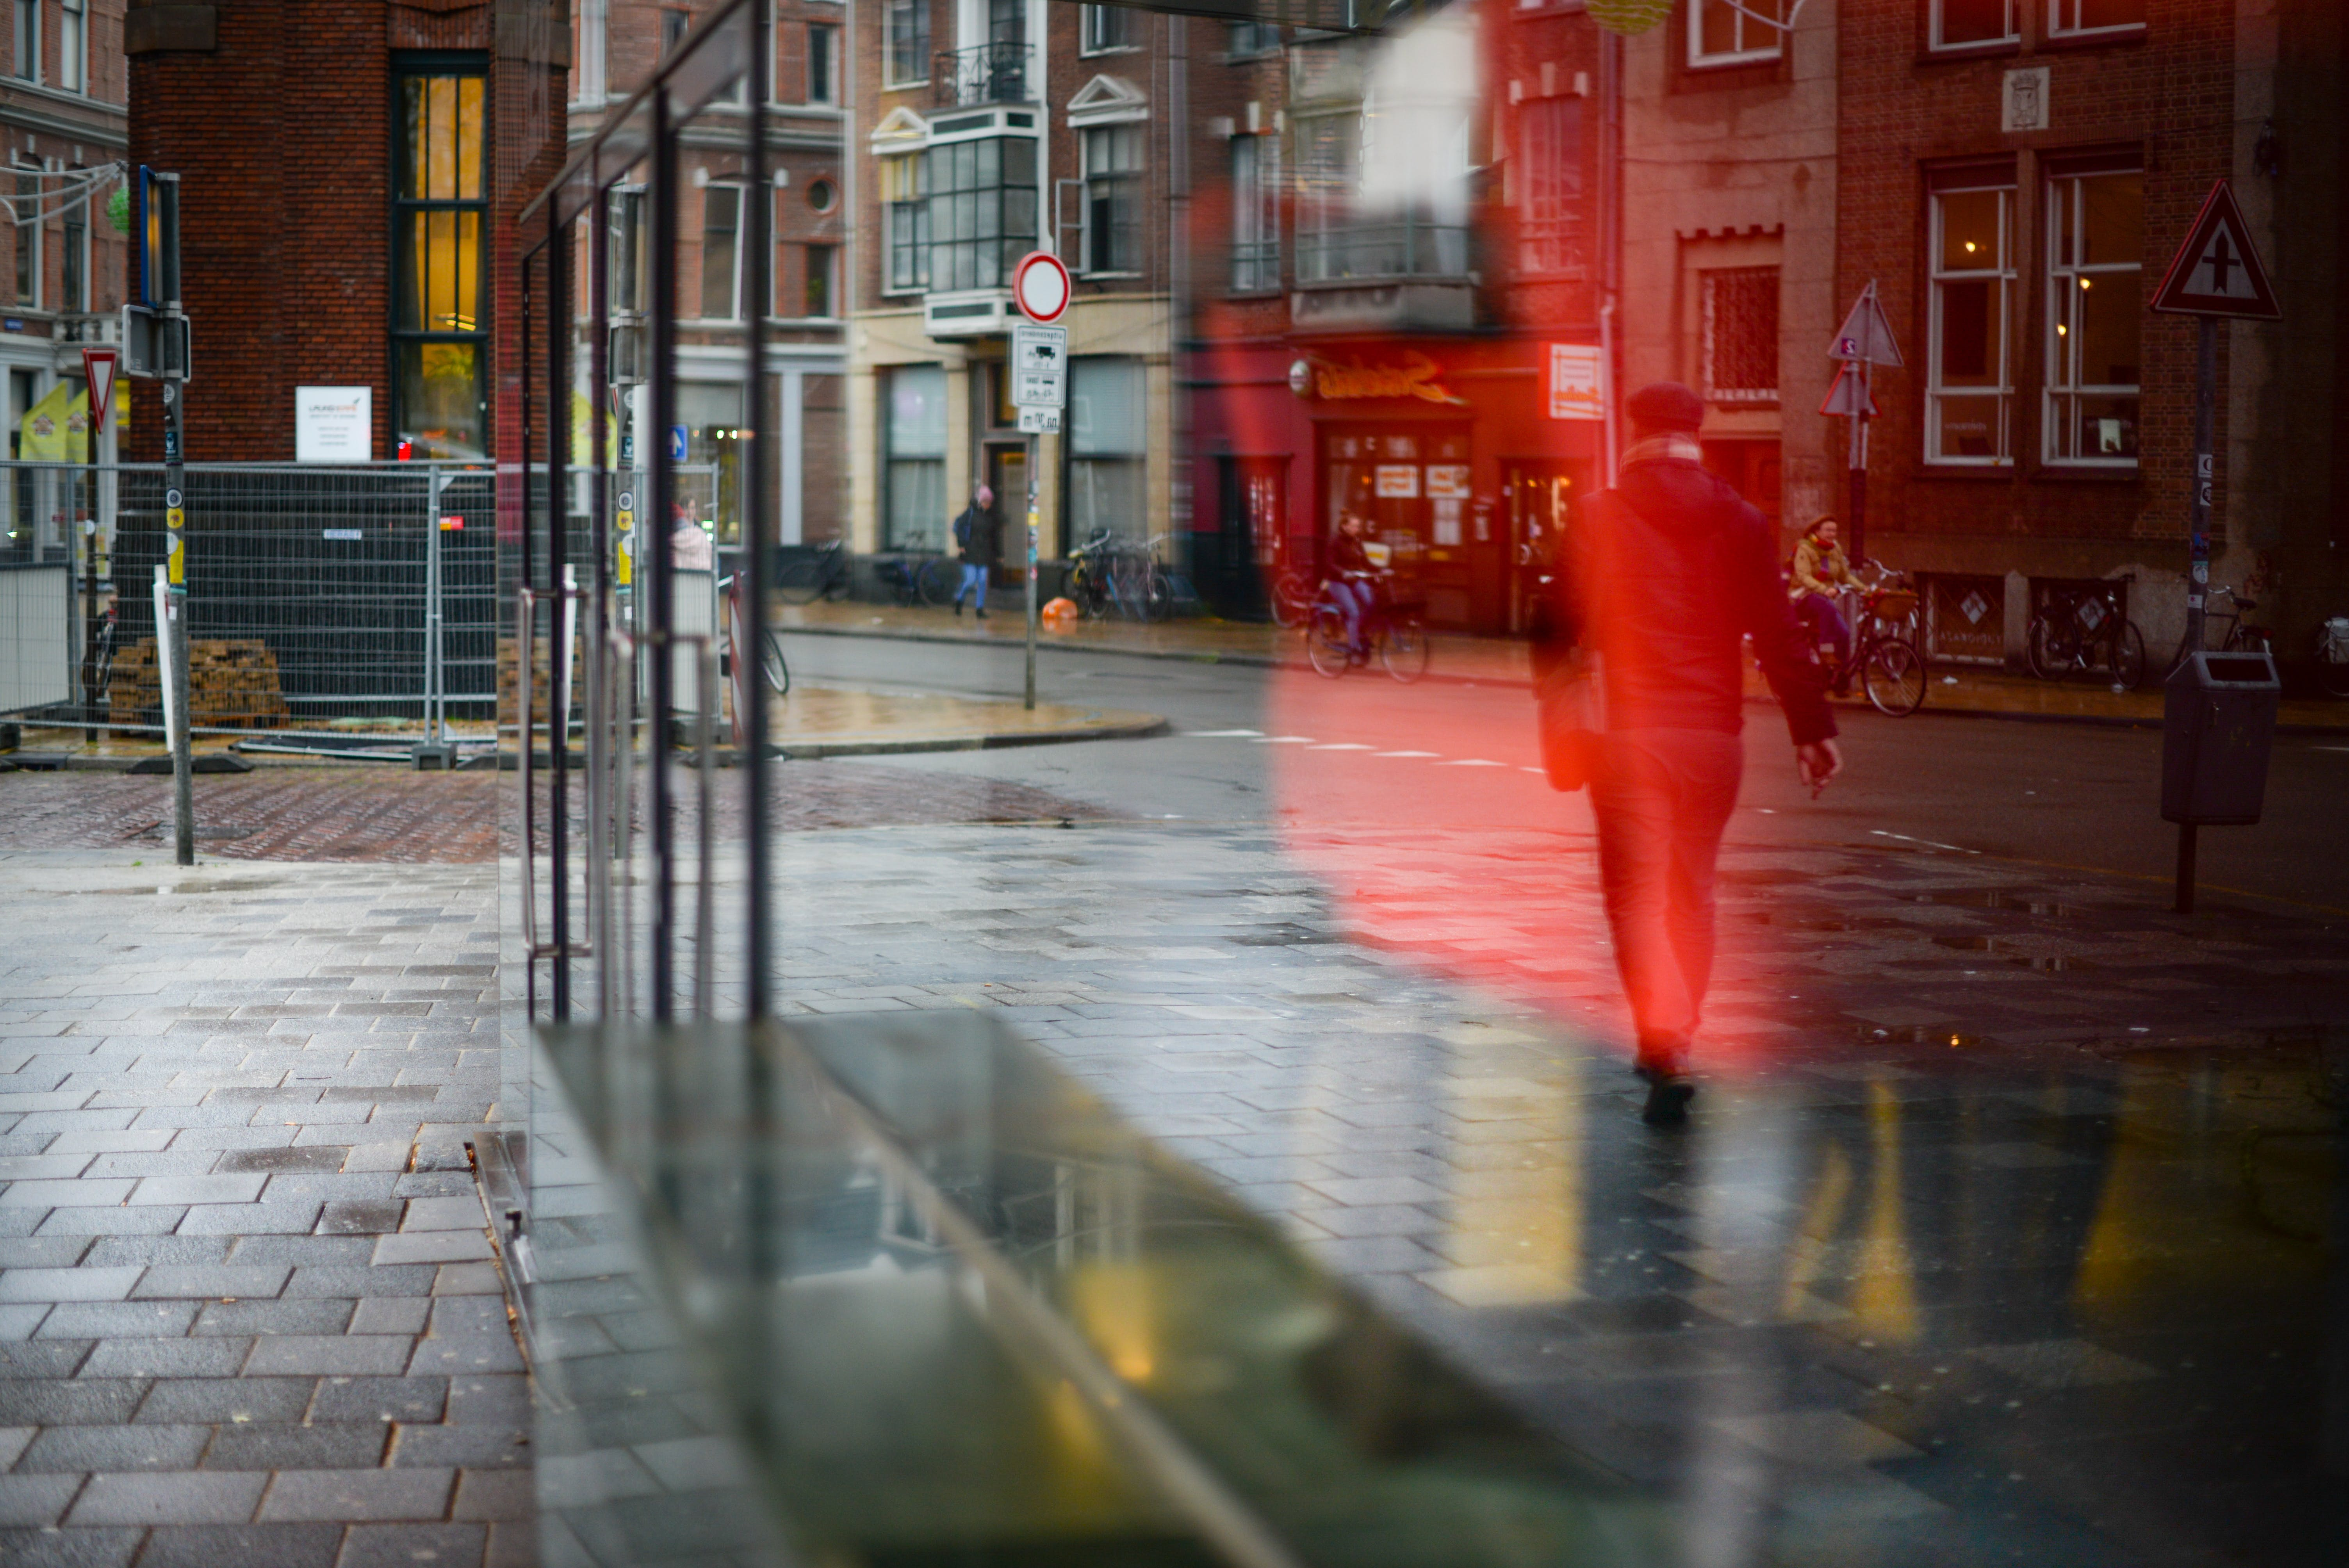 Man Walking on Road Reflected on Glass Window